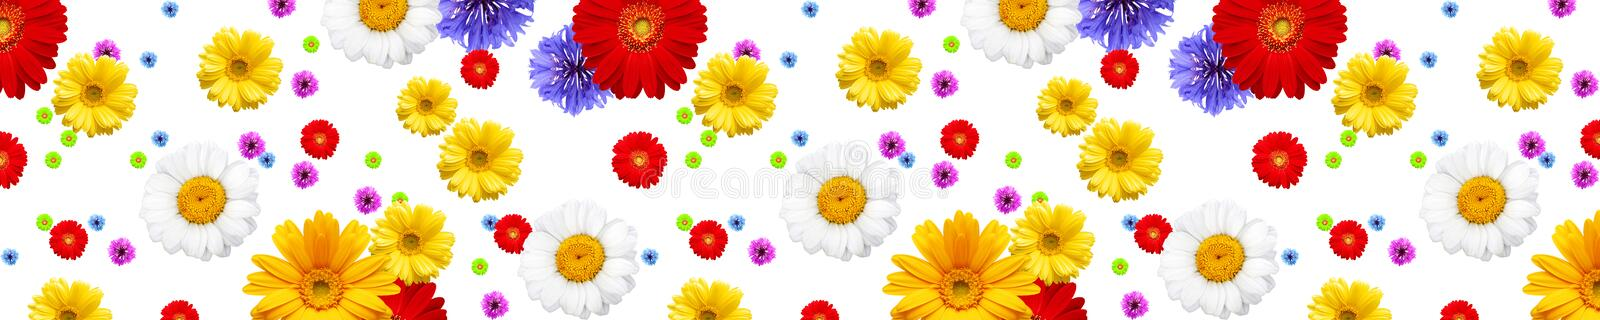 Different flowers royalty free stock images